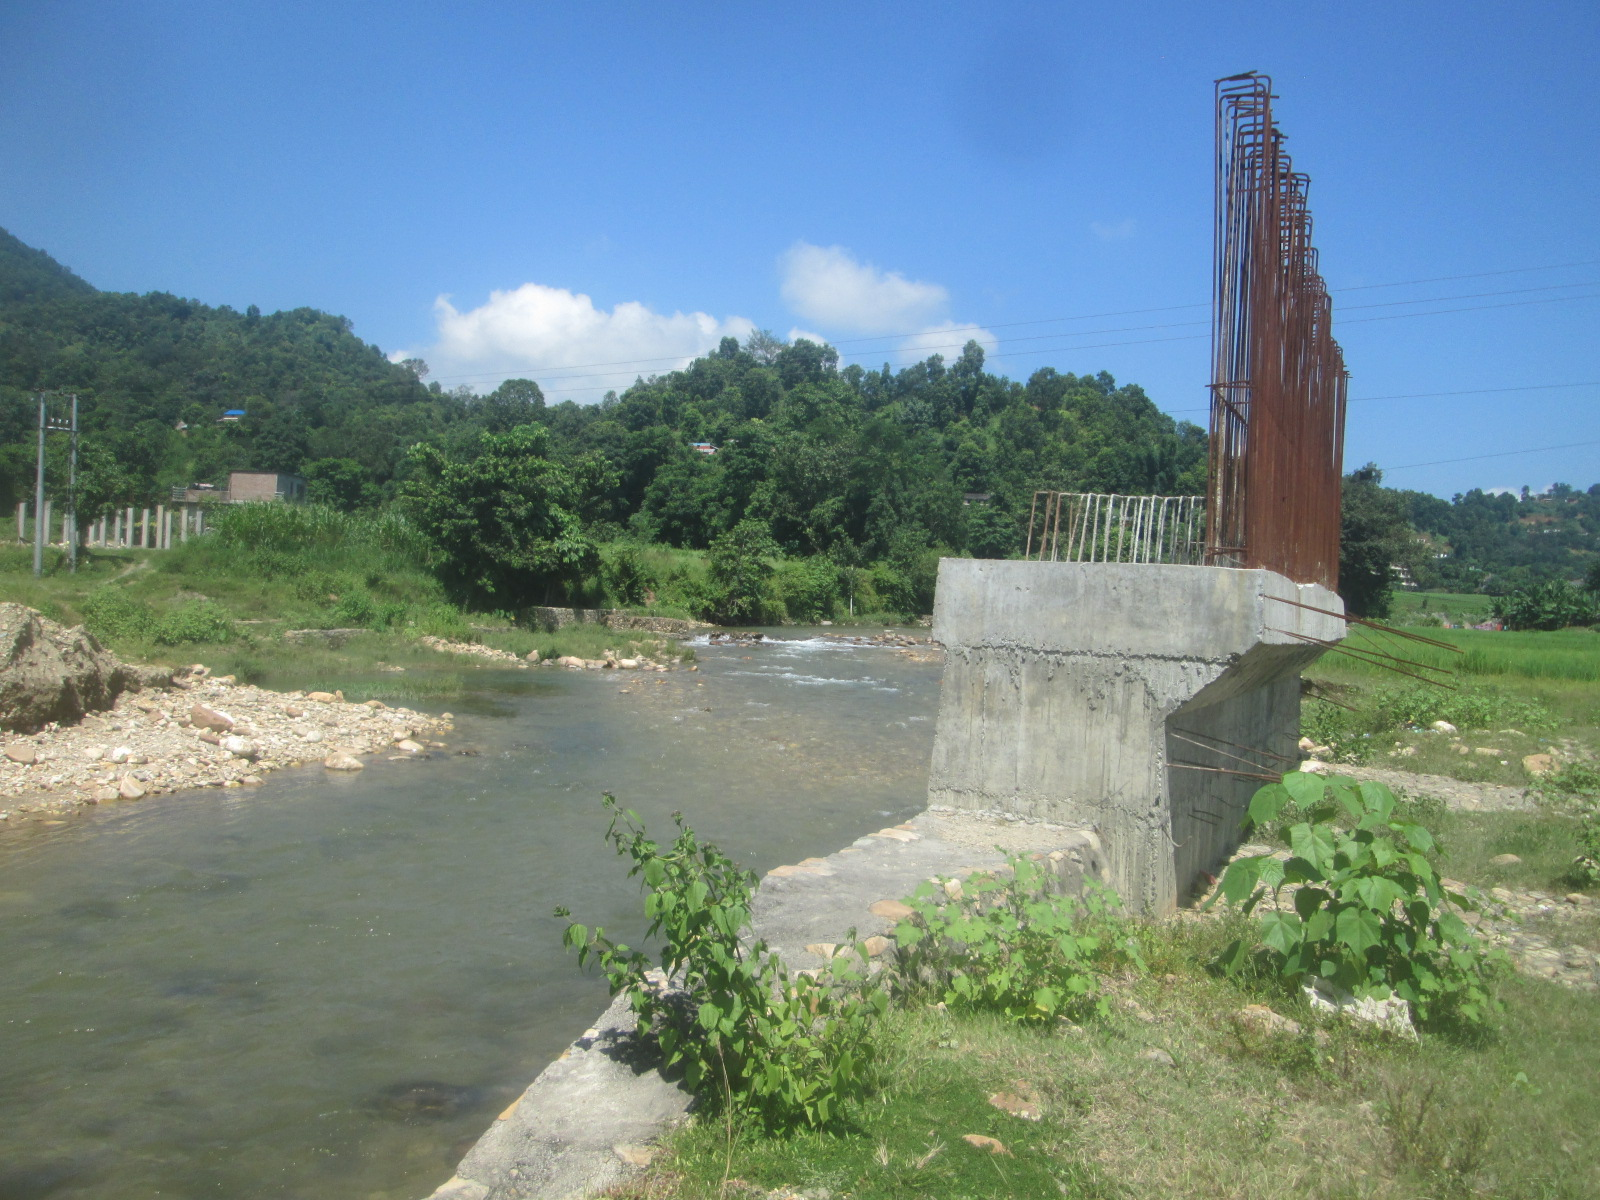 An under construction bridge at Sange river in Tanahun as seen on Wednesday, October 31, 2018. Photo: Madan Wagle/Tanahun